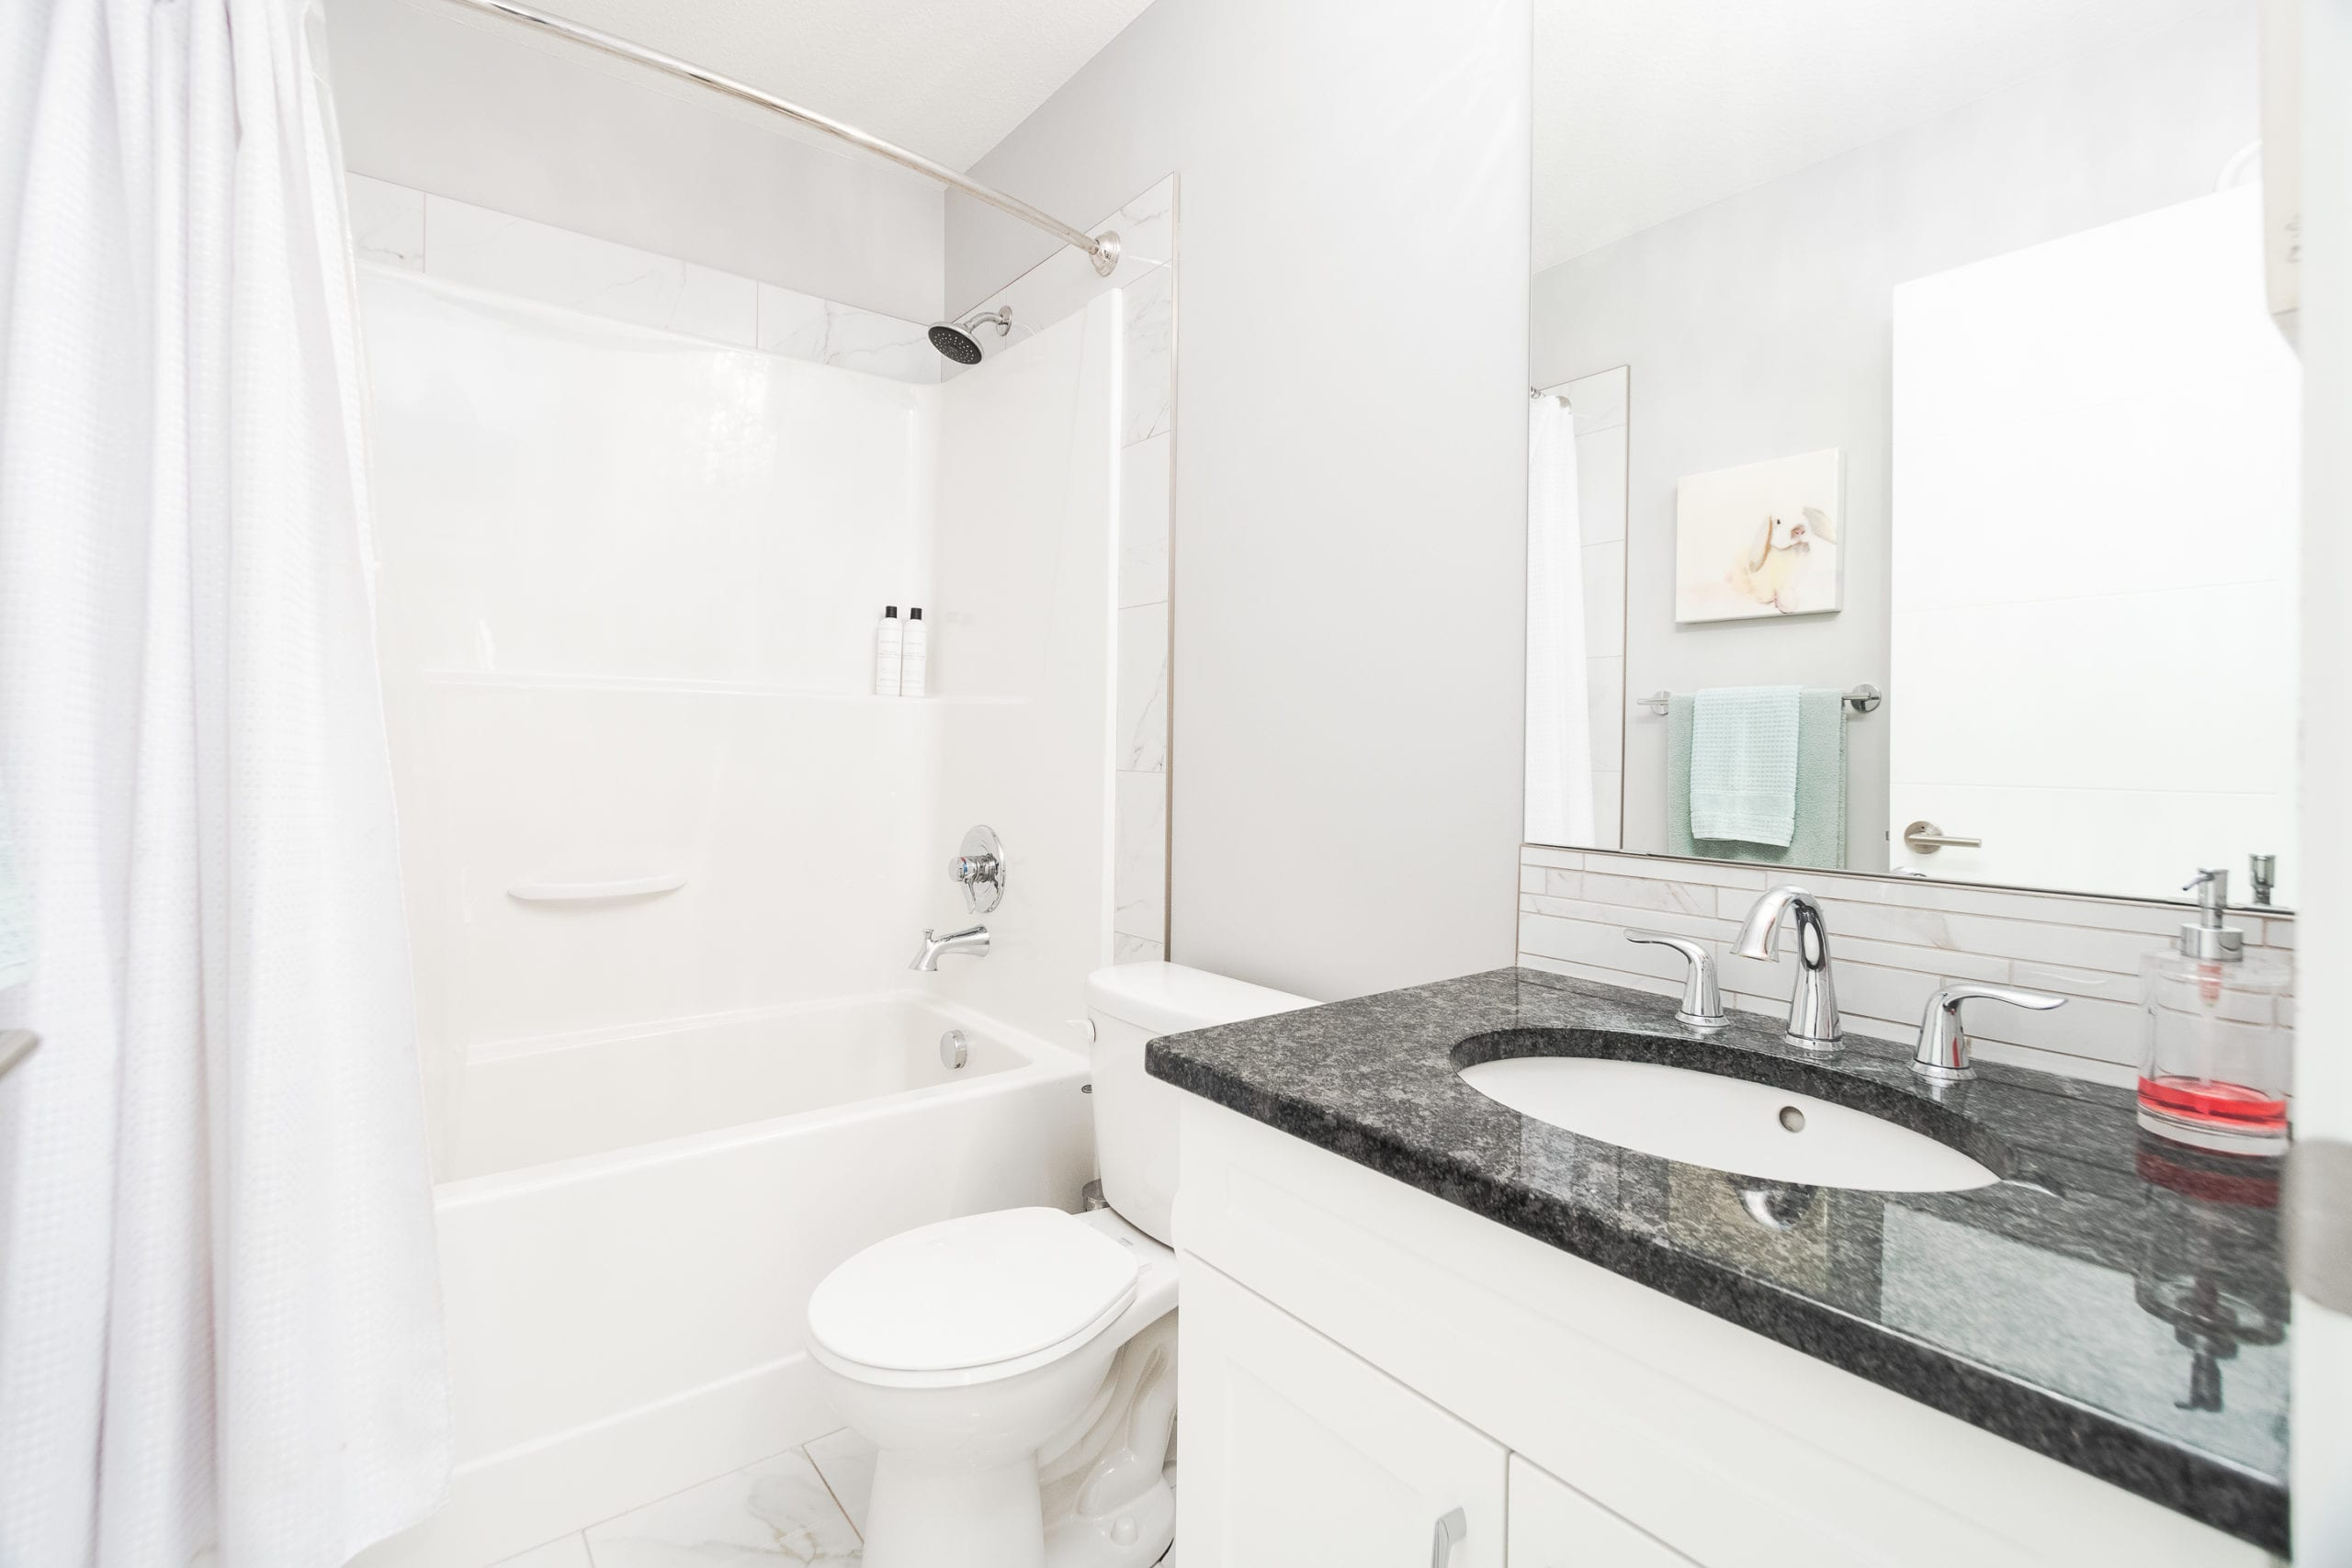 Hello Gorgeous - 1306 Kings Heights Way SE, Airdrie AB. - Tara Molina Real Estate (44 of 53)